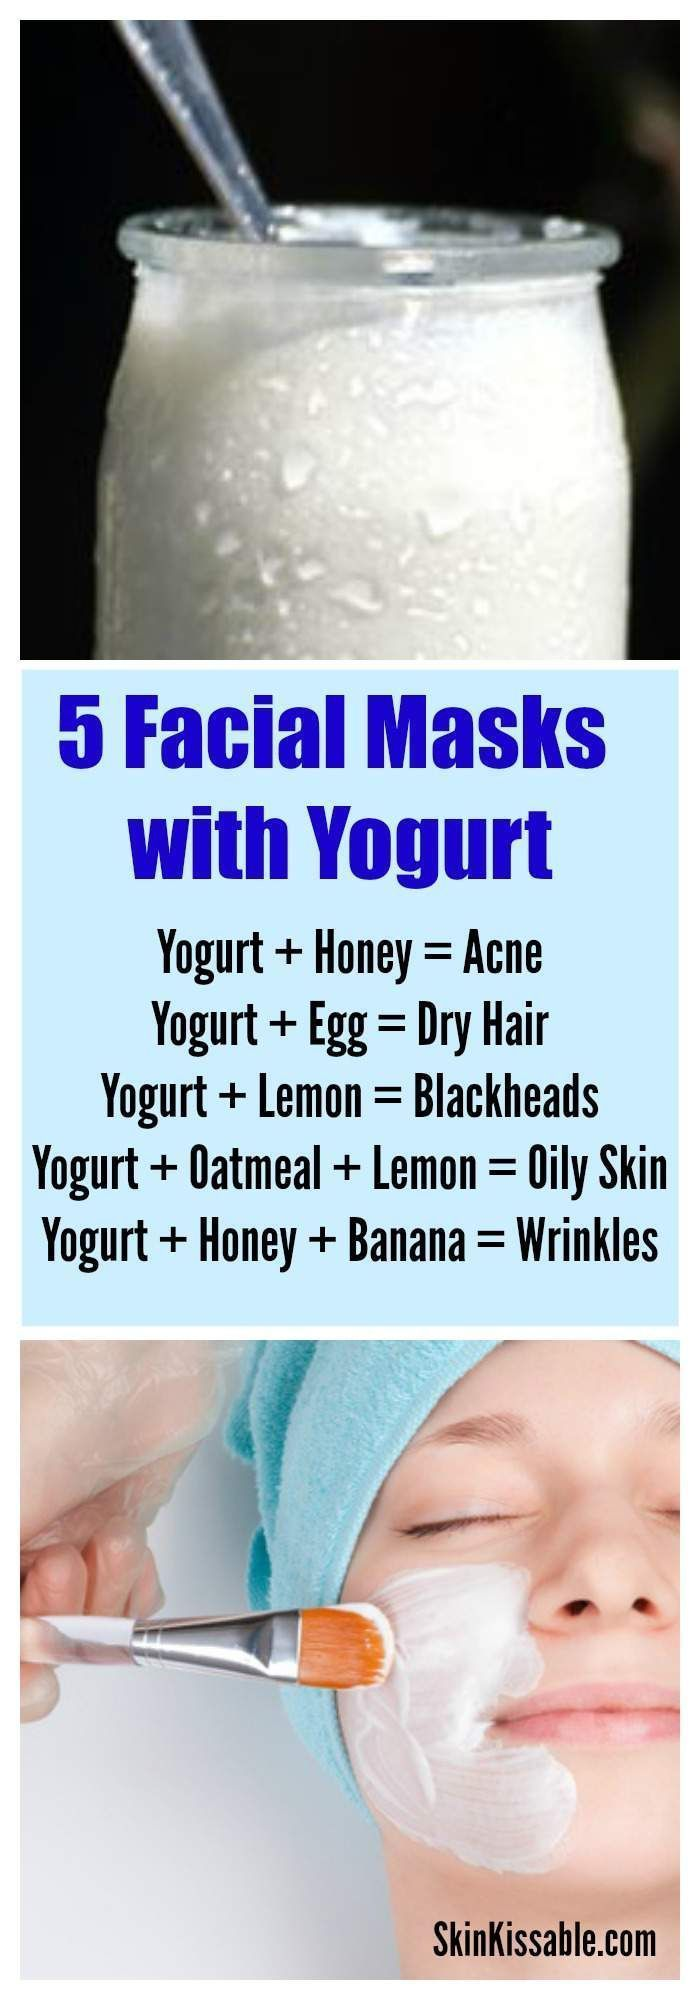 Yogurt homemade skin care masks & other diy remedies for wrinkles, acne, blackheads & more. #skincare